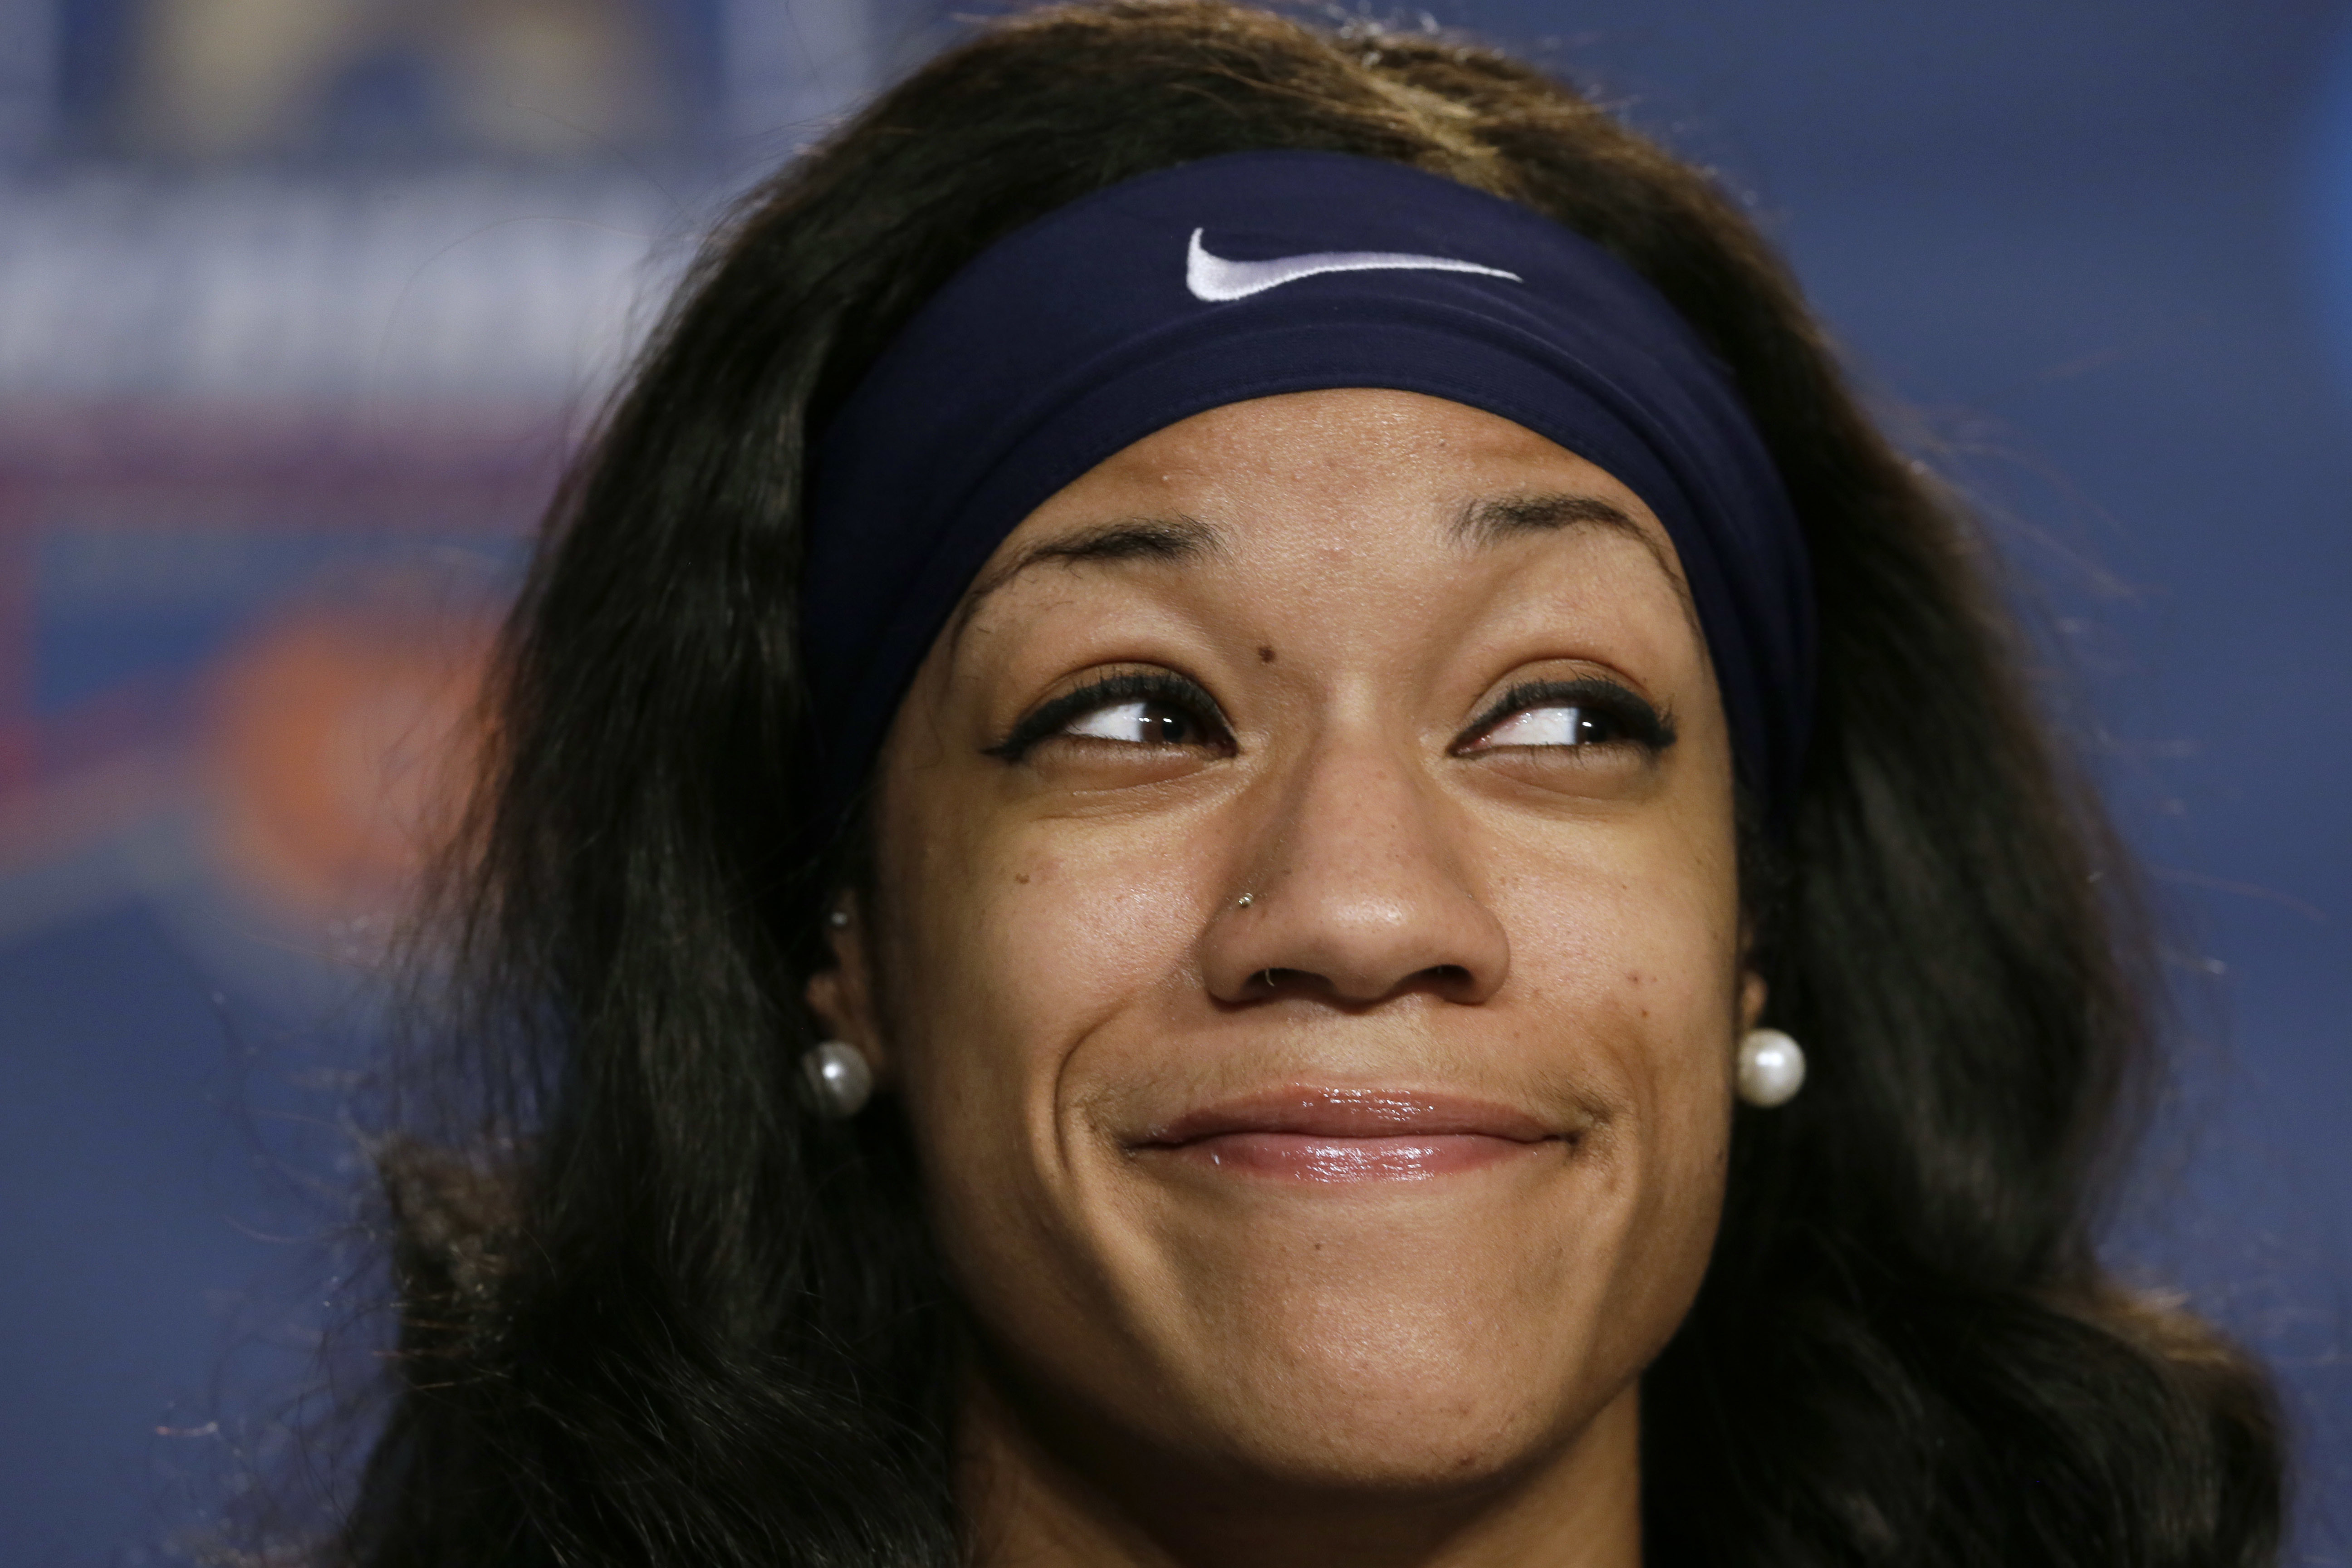 Syracuse center Briana Day smiles during a news conference ahead of a regional semifinal women's college basketball game in the NCAA Tournament, Thursday, March 24, 2016, in Sioux Falls, S.D. Syracuse will play South Carolina on Friday. (AP Photo/Charlie